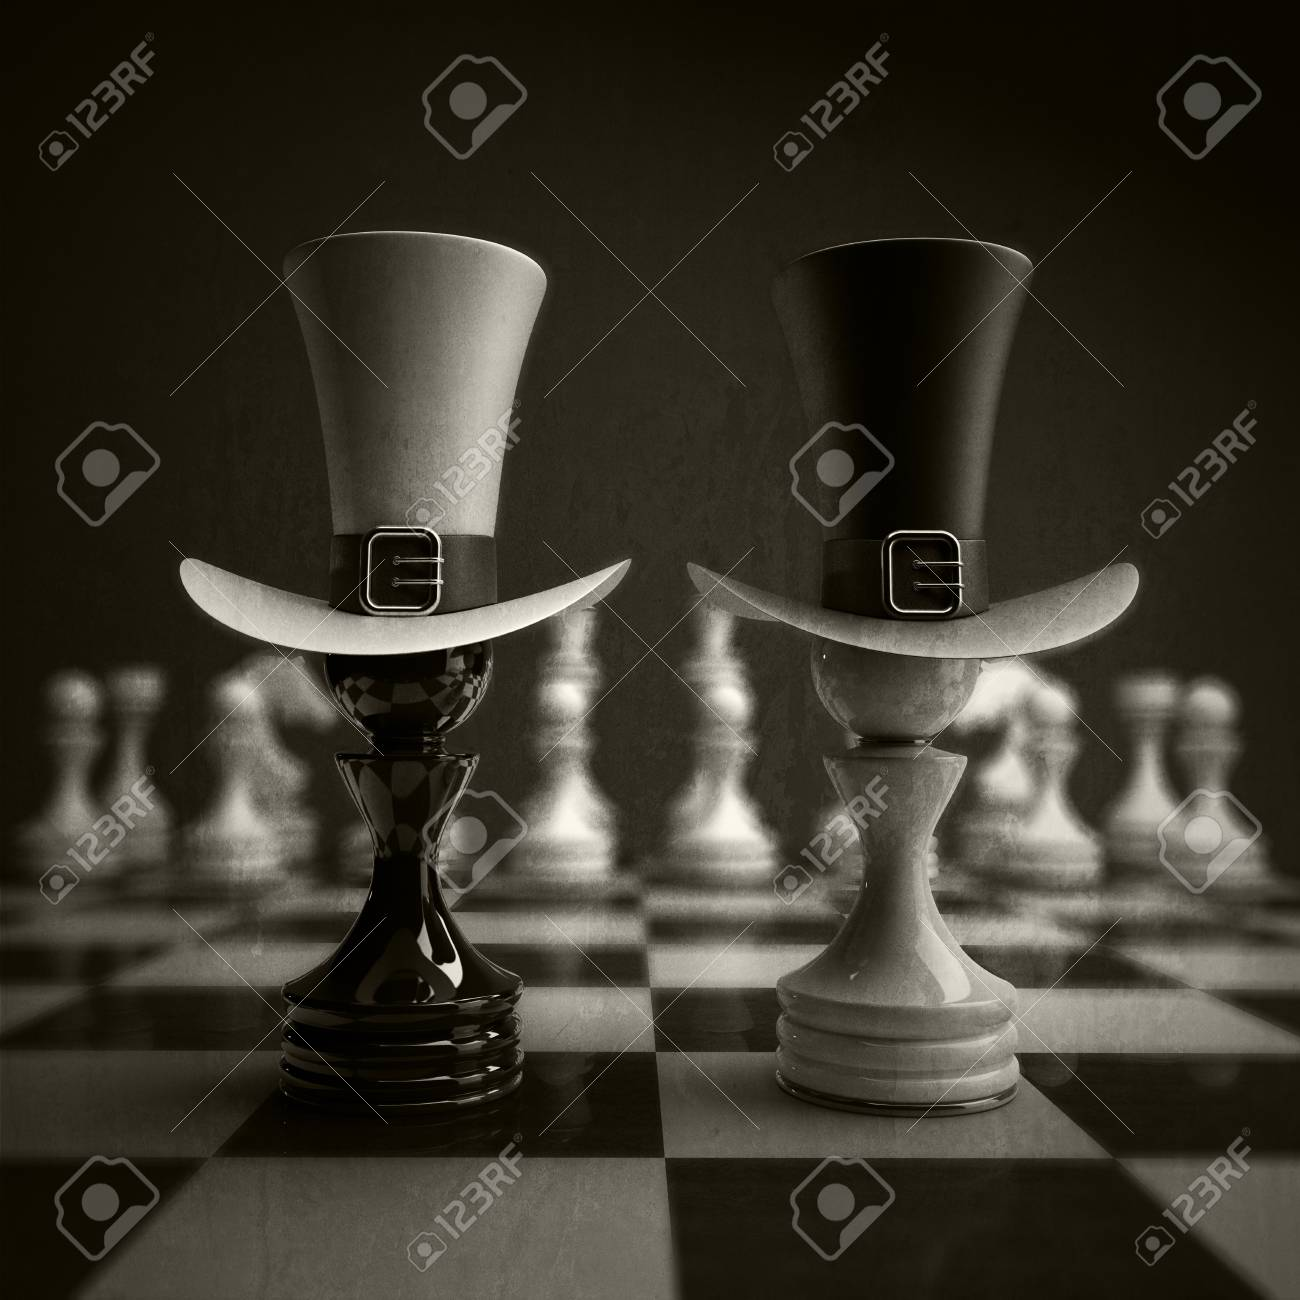 Black Vs Wihte Chess Pawn Background High Resolution Stock Photo 1300x1300